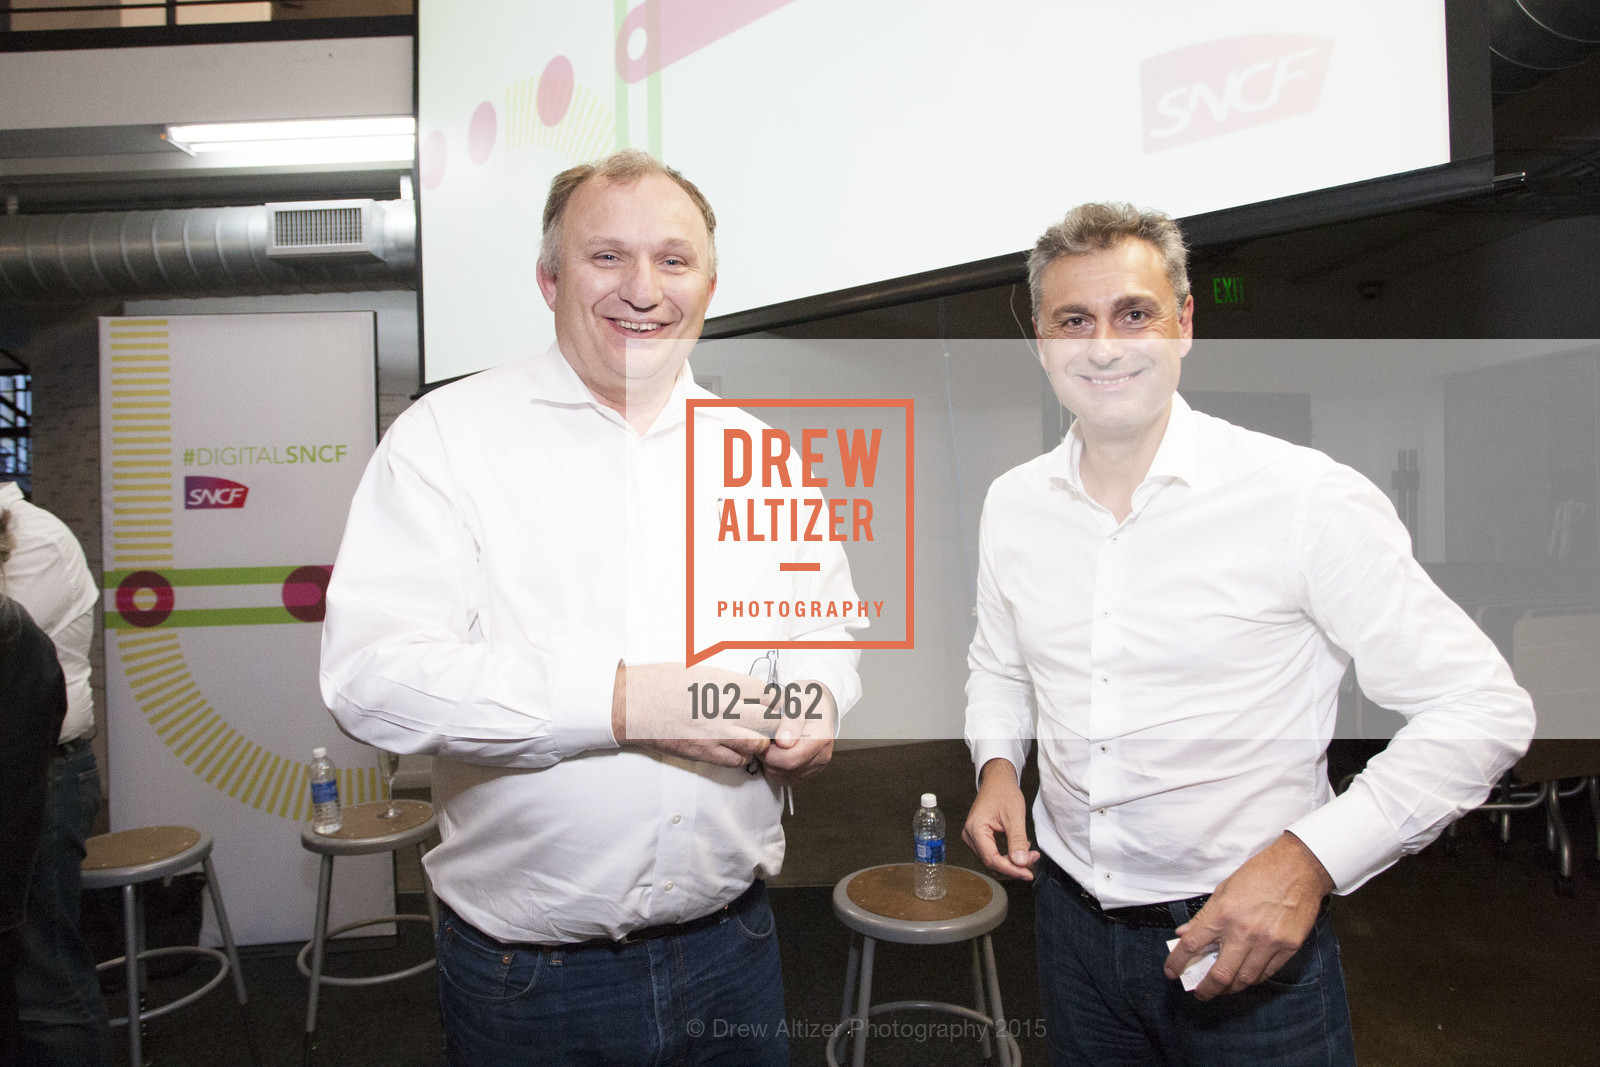 Top Picks, Inauguration of SNCF Innovation Lab, August 26th, 2015, Photo,Drew Altizer, Drew Altizer Photography, full-service event agency, private events, San Francisco photographer, photographer California